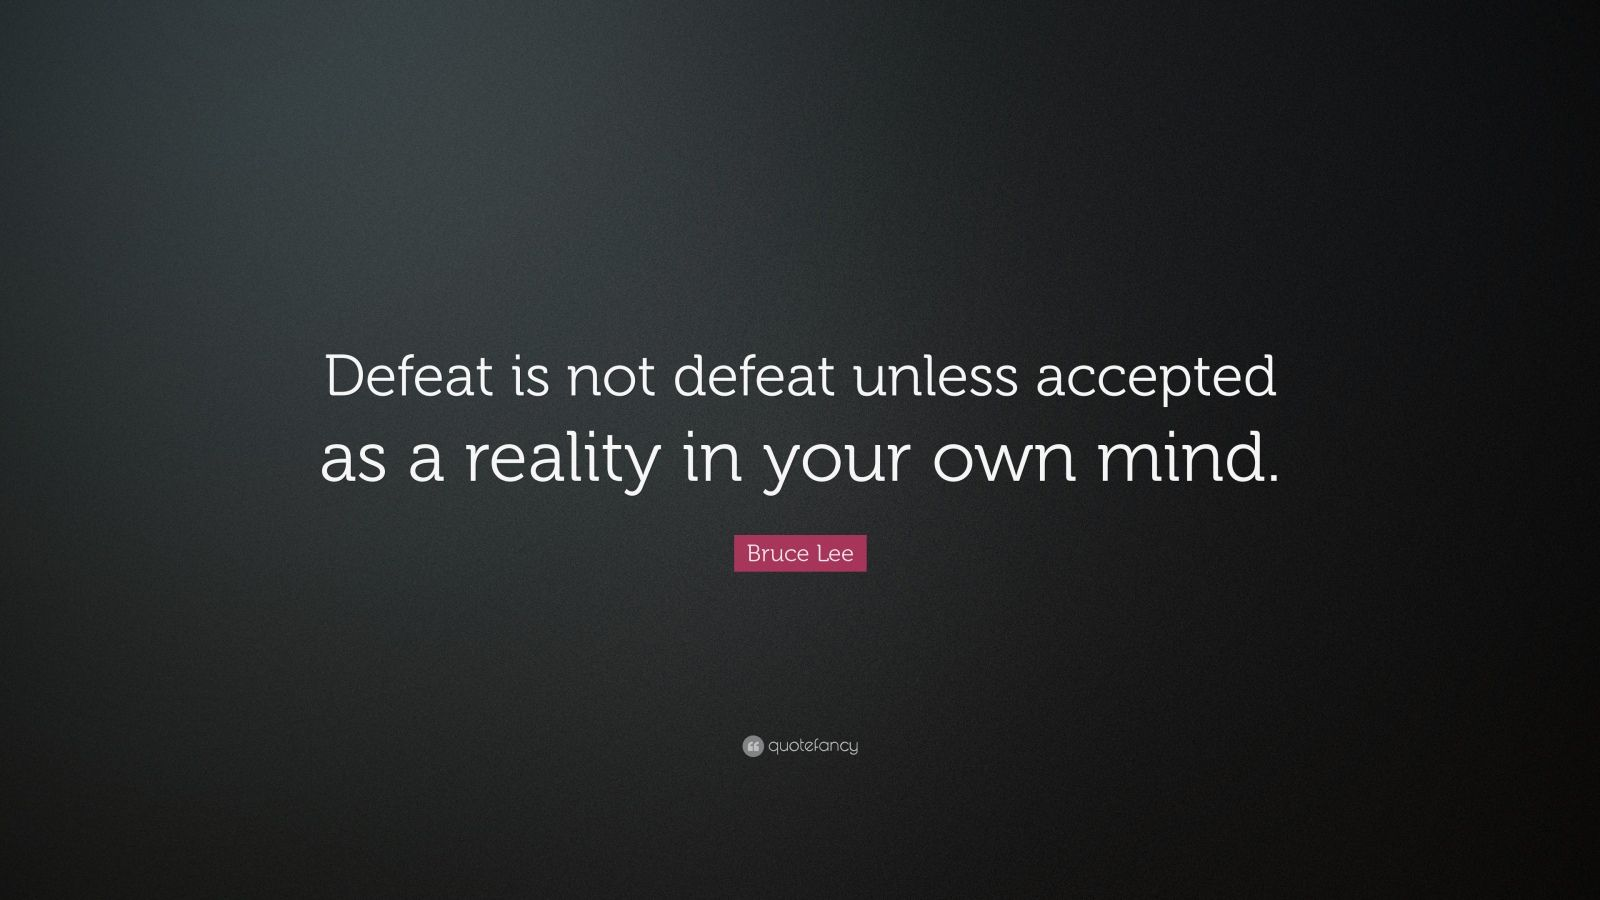 Bruce Lee Defeat Quote